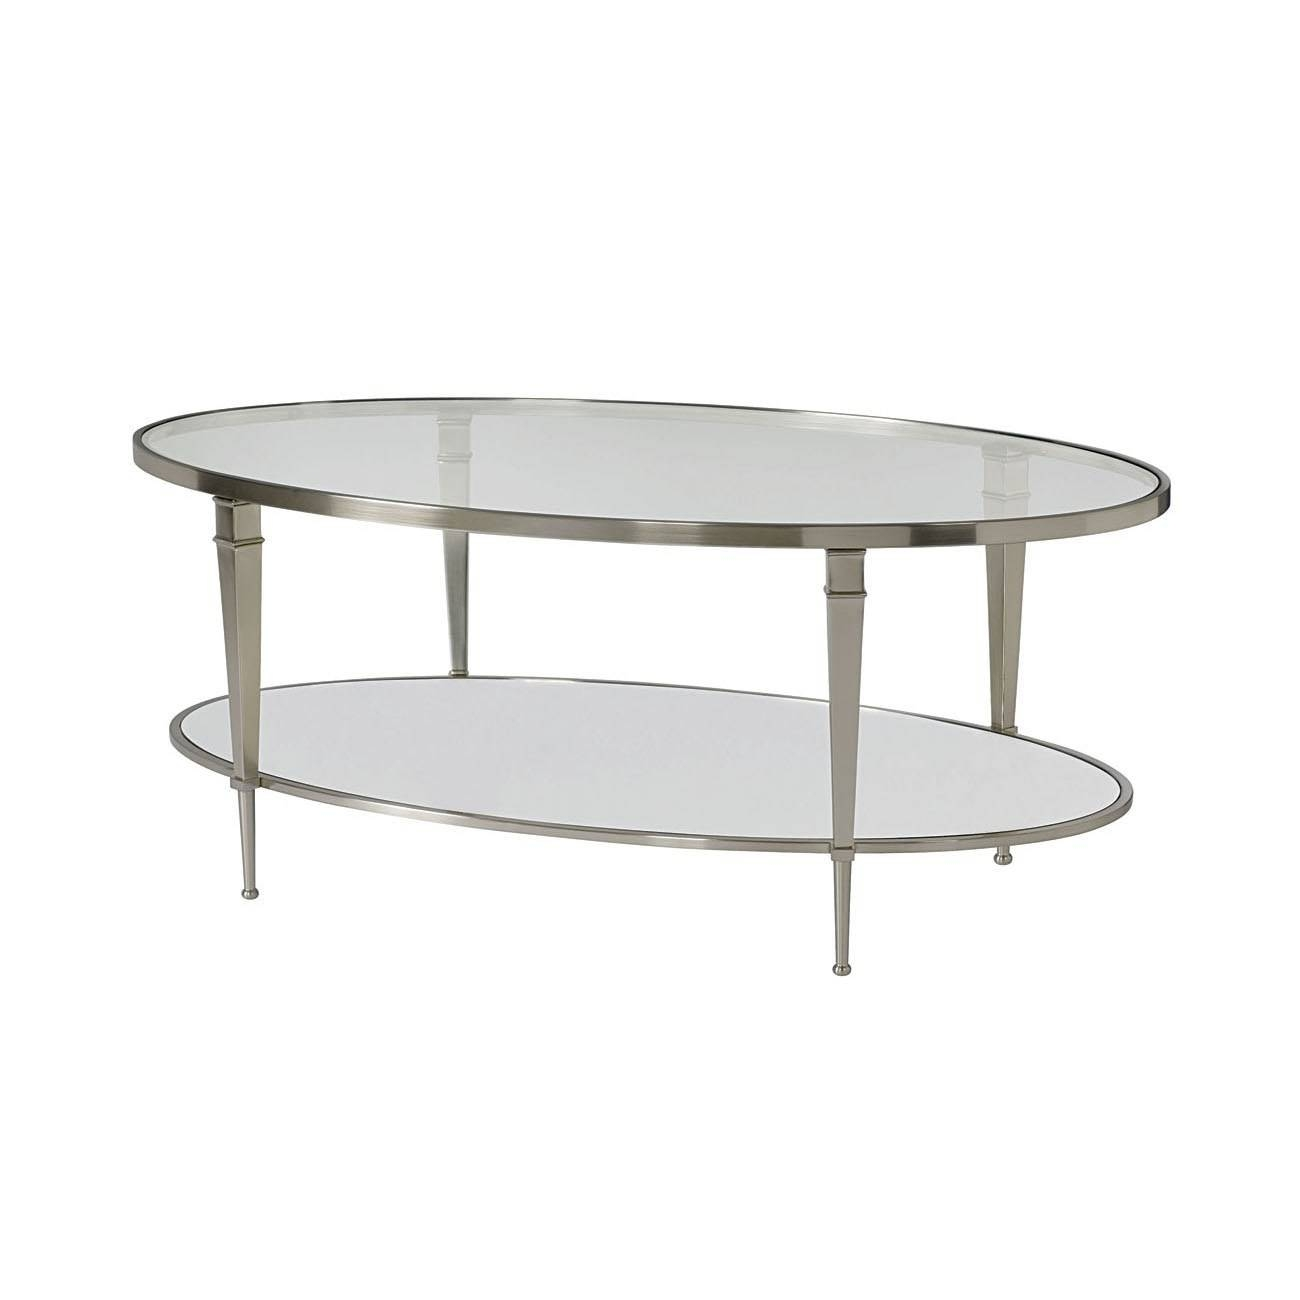 Hammary 173-912 Mallory Oval Cocktail Table In Satin Nickel throughout Oval Mirrored Coffee Tables (Image 14 of 30)